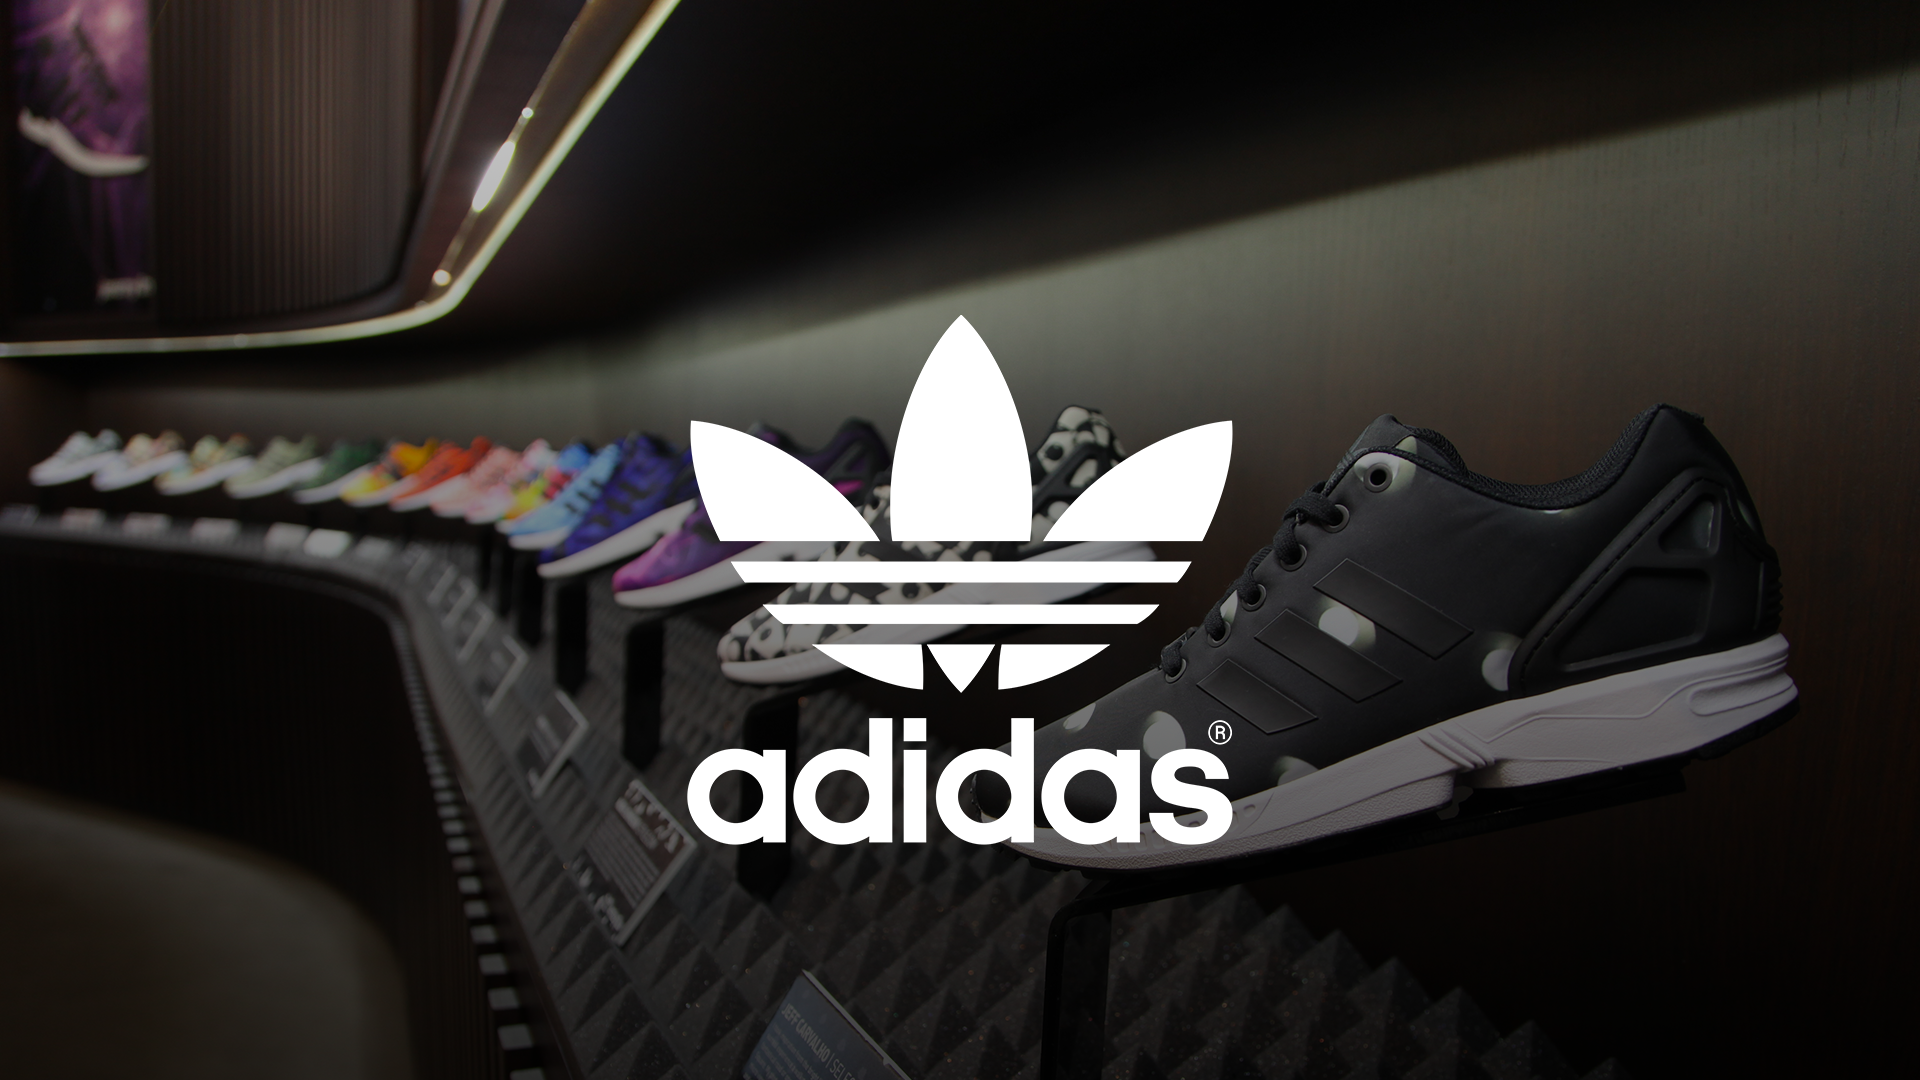 Adidas_1920x1080.png